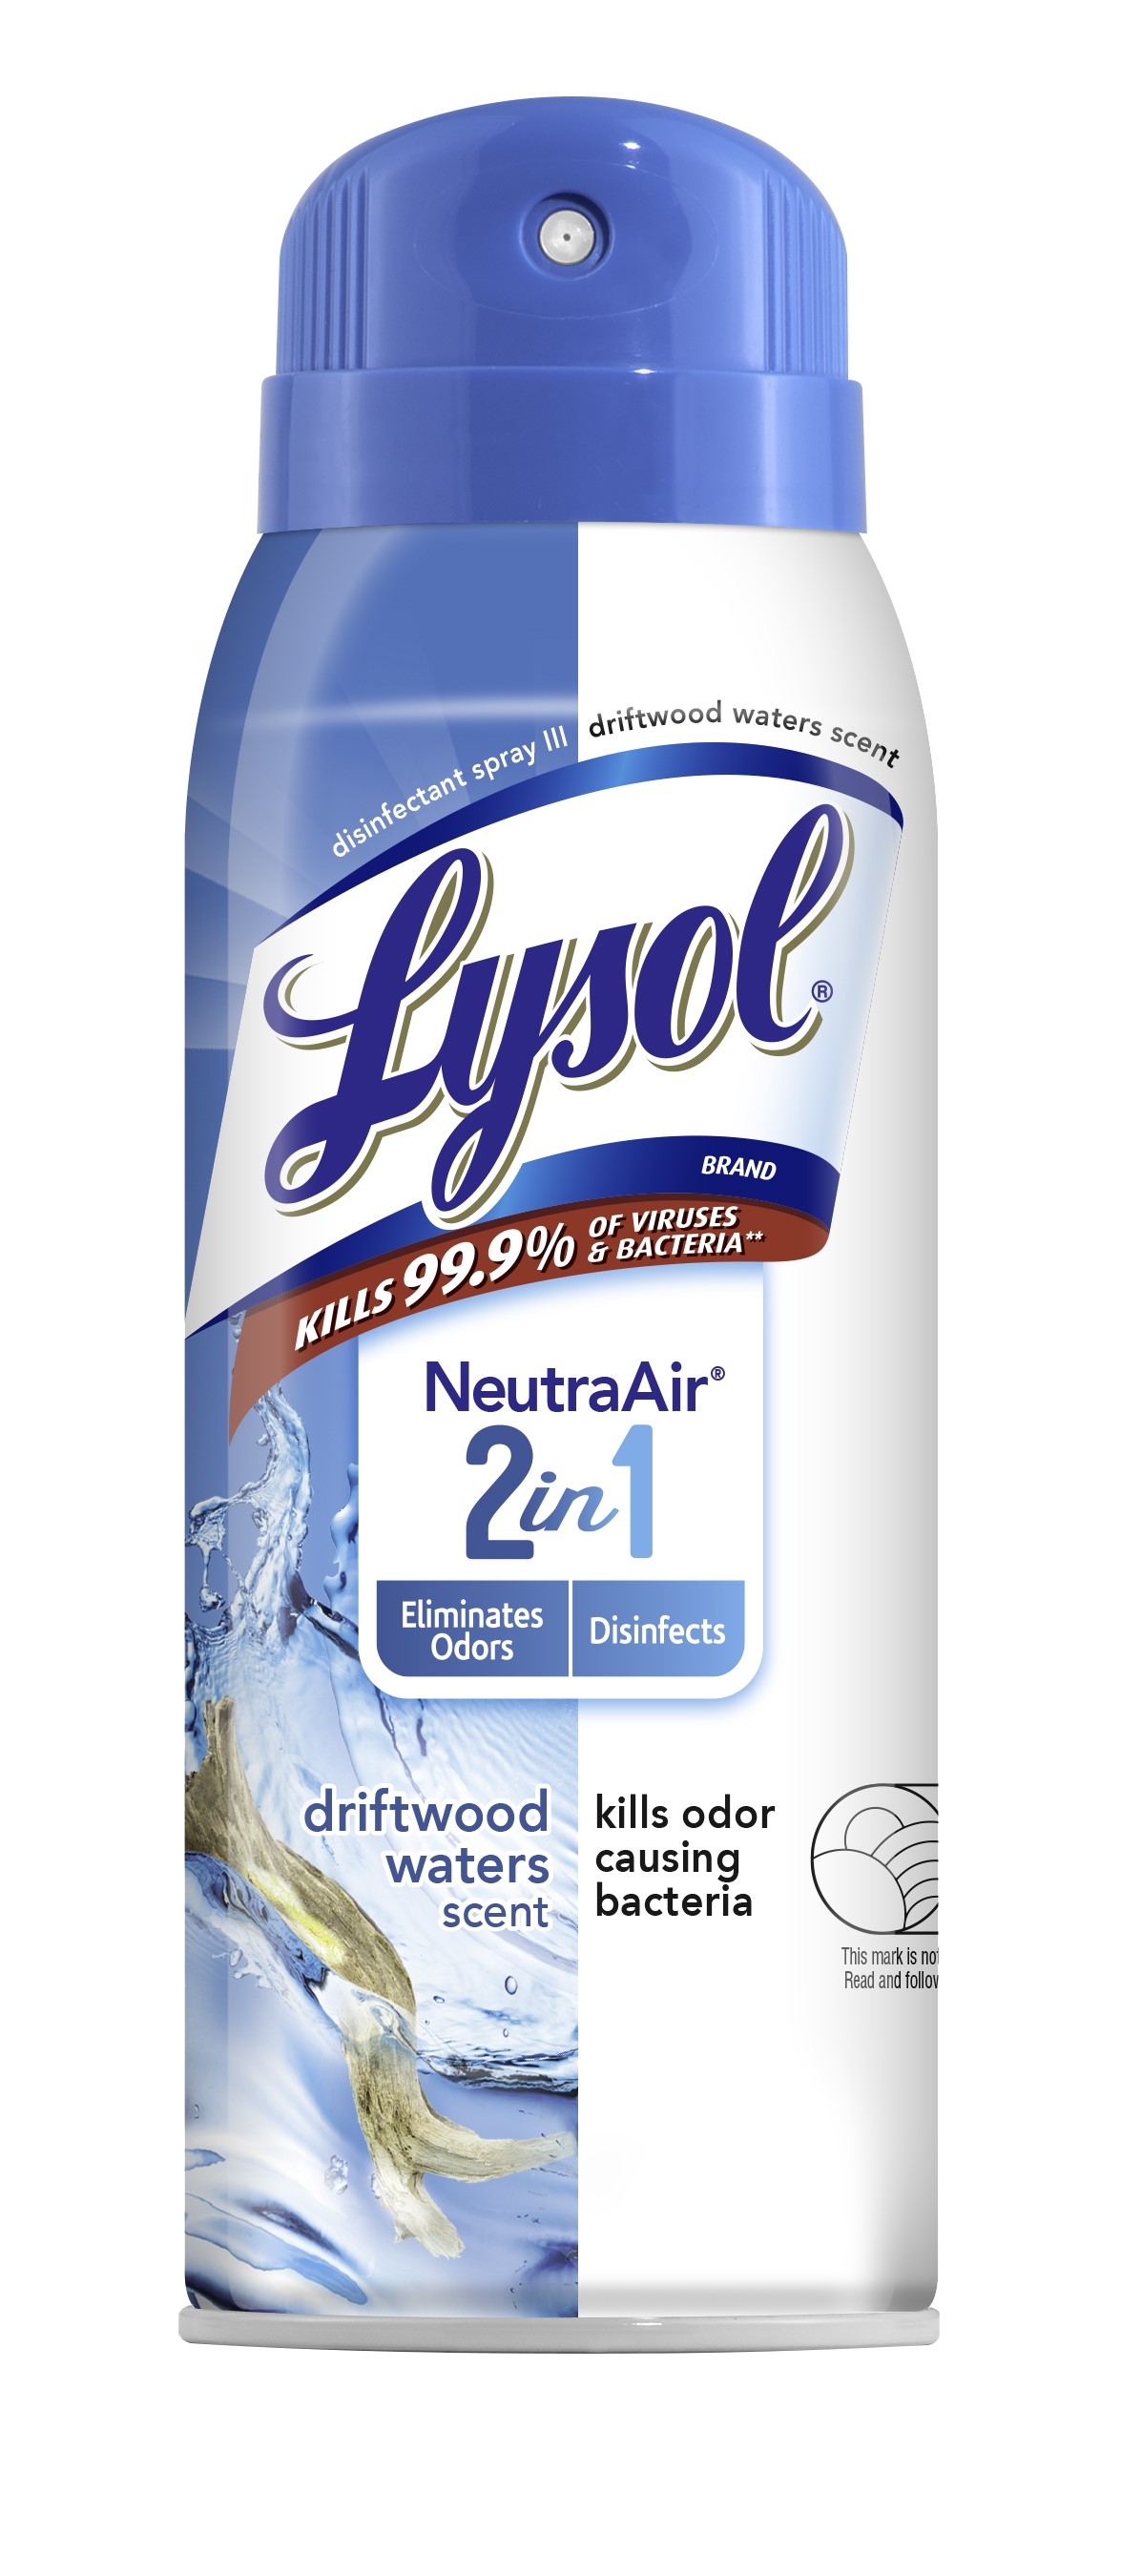 Lysol Disinfectant Spray  Neutra Air  2 in 1  Driftwood Waters Photo